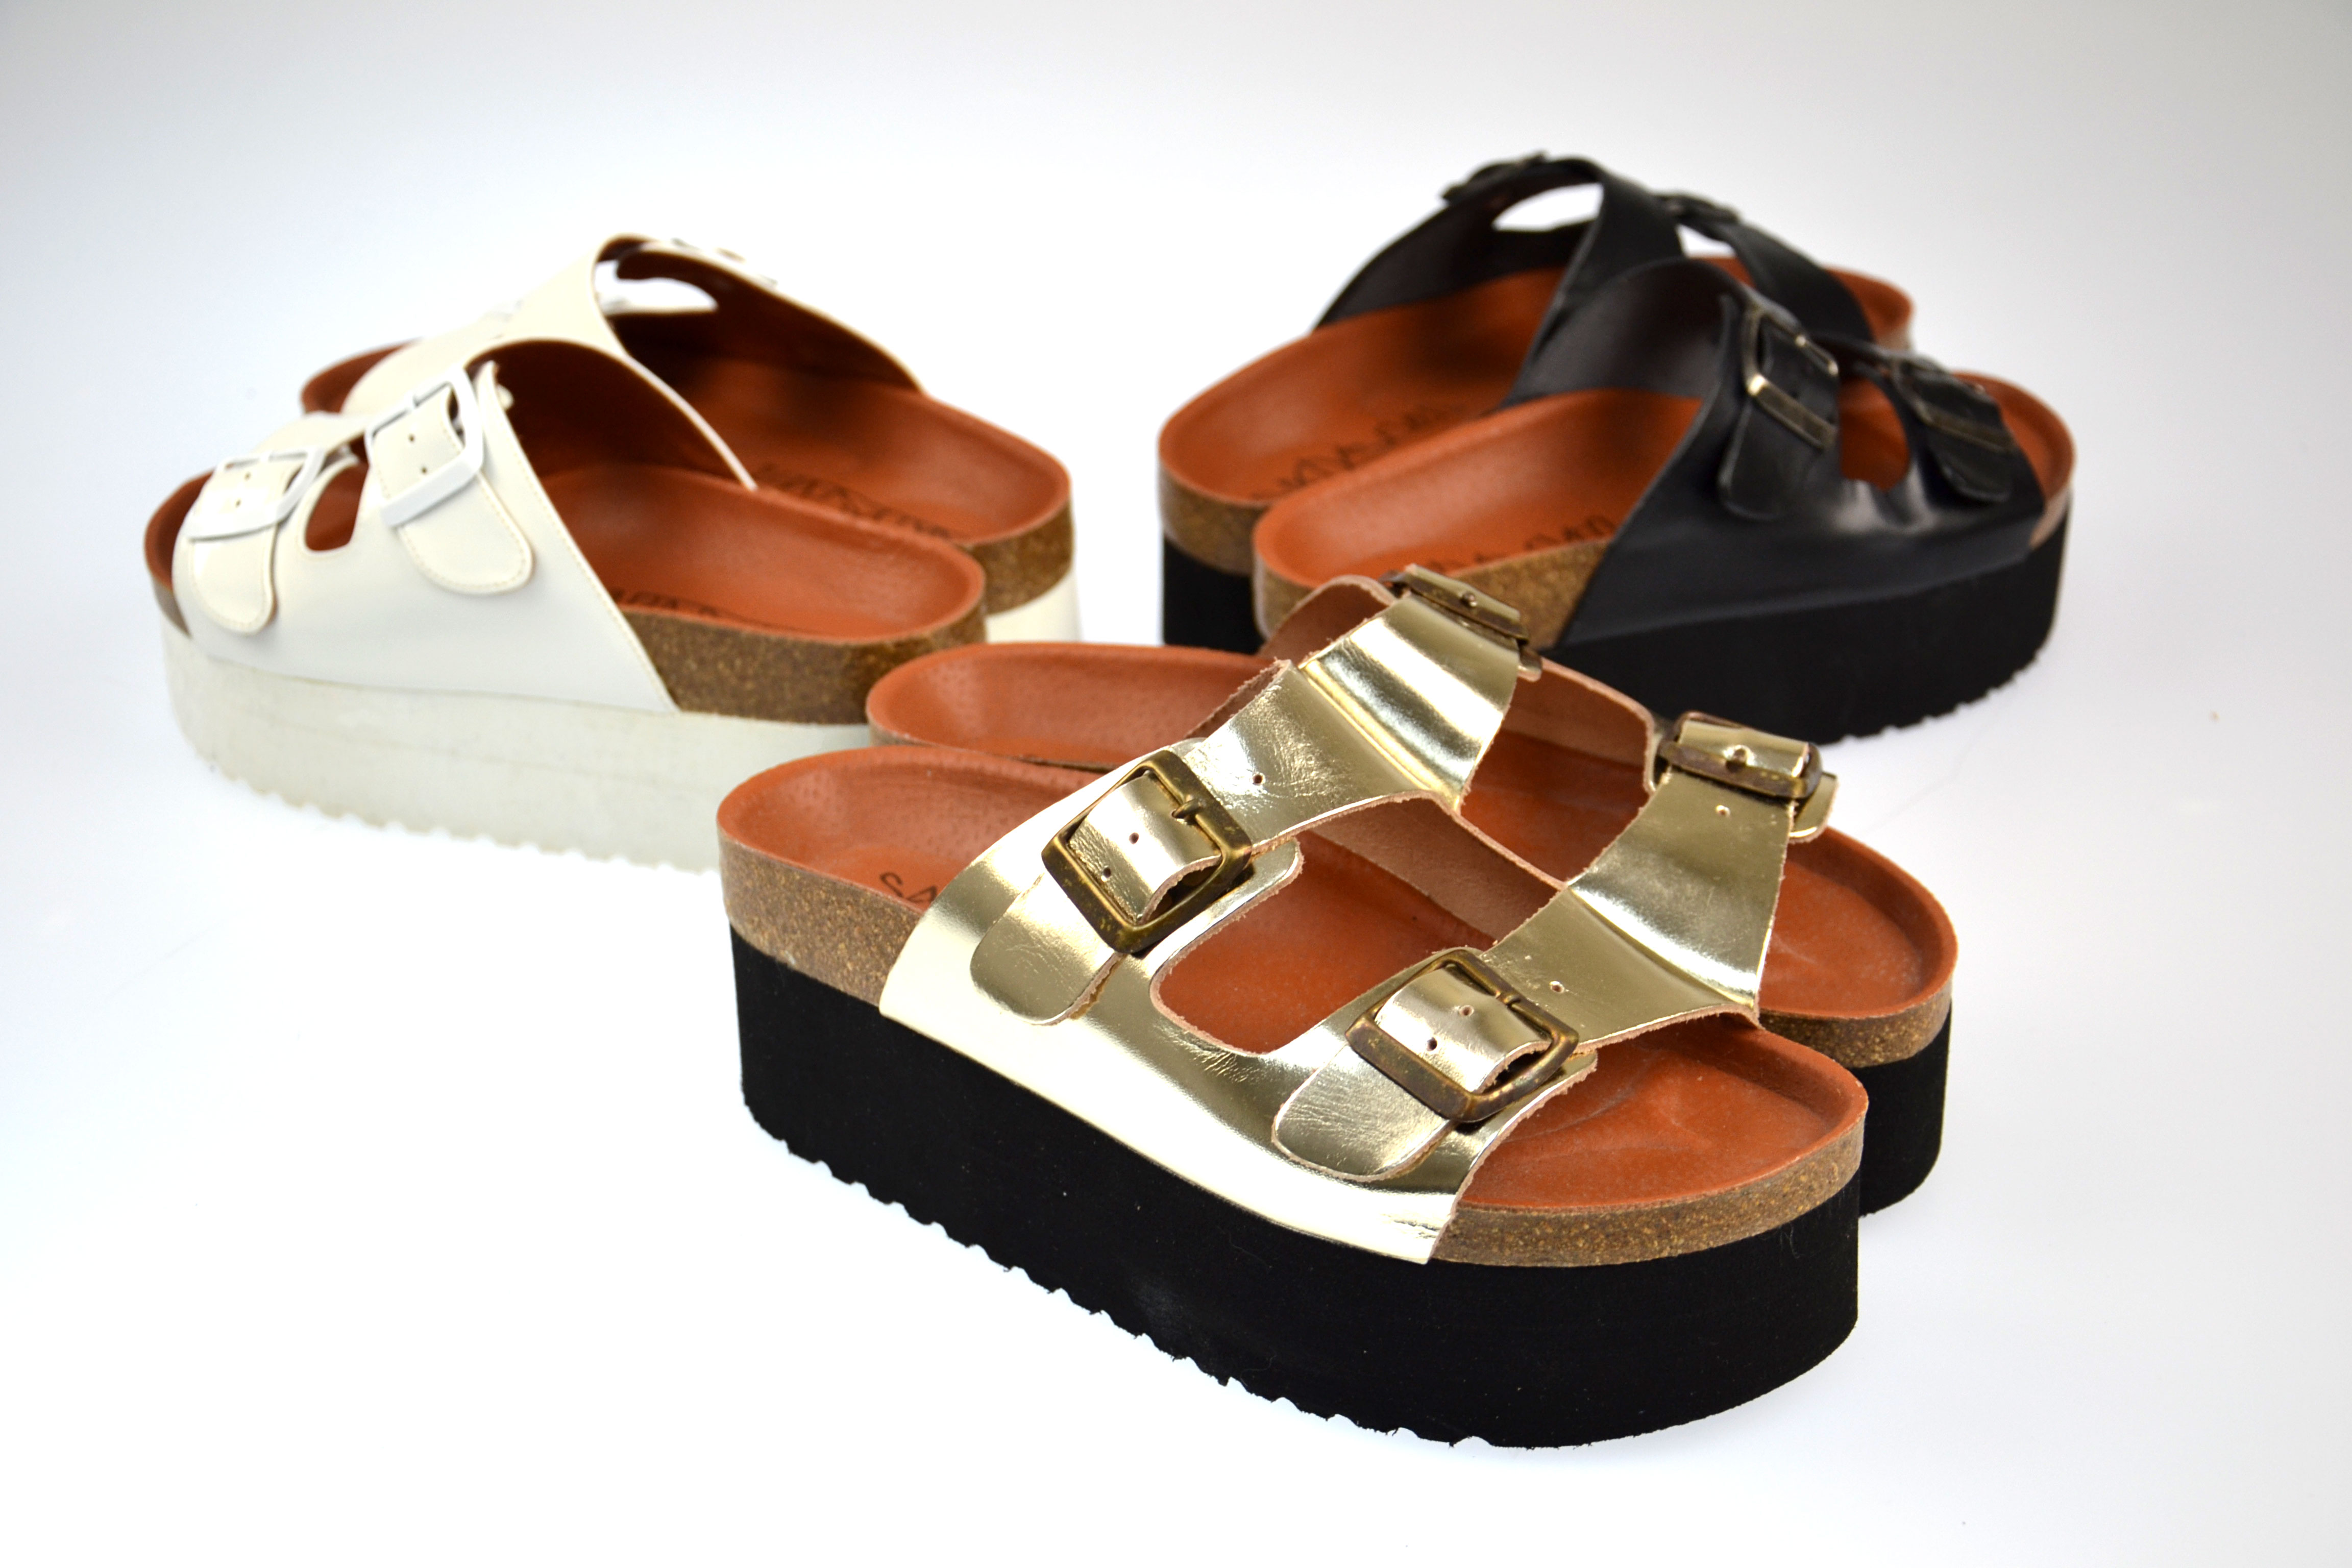 The Sixtyseven Indigo Sandal Is One Of Envi Shoes Hottest